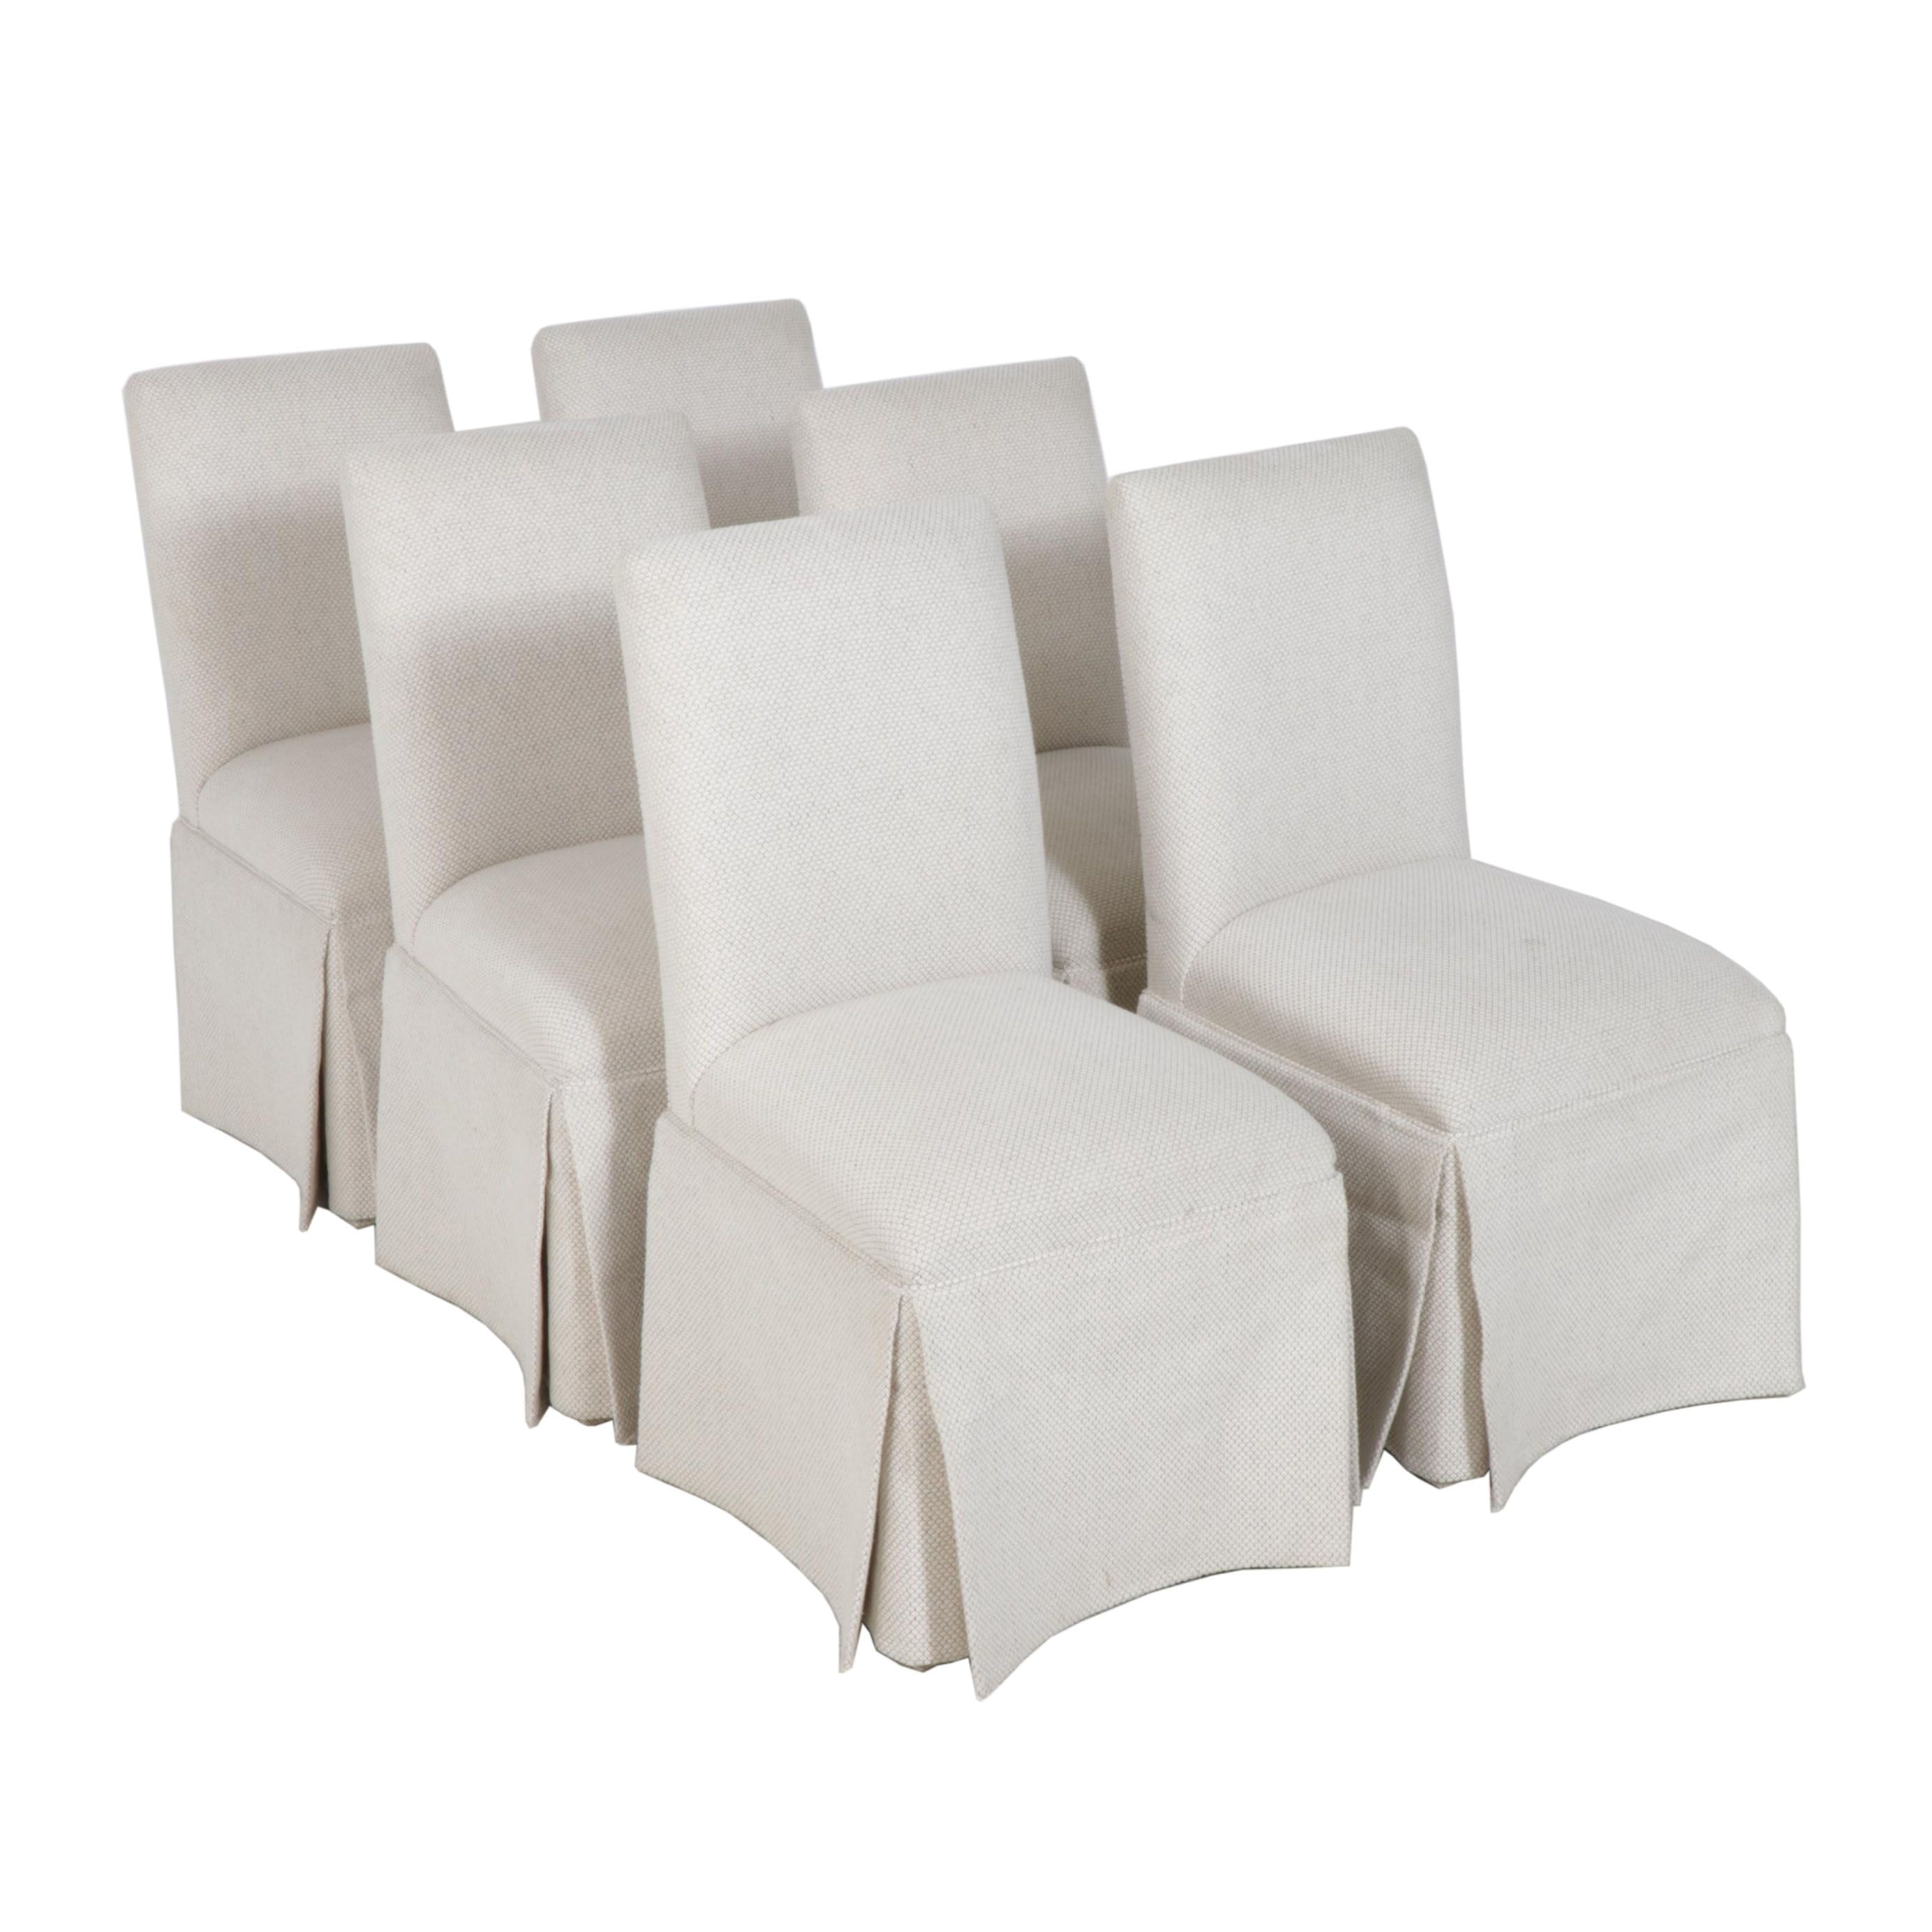 Contemporary Upholstered Banquet Style Dining Chairs